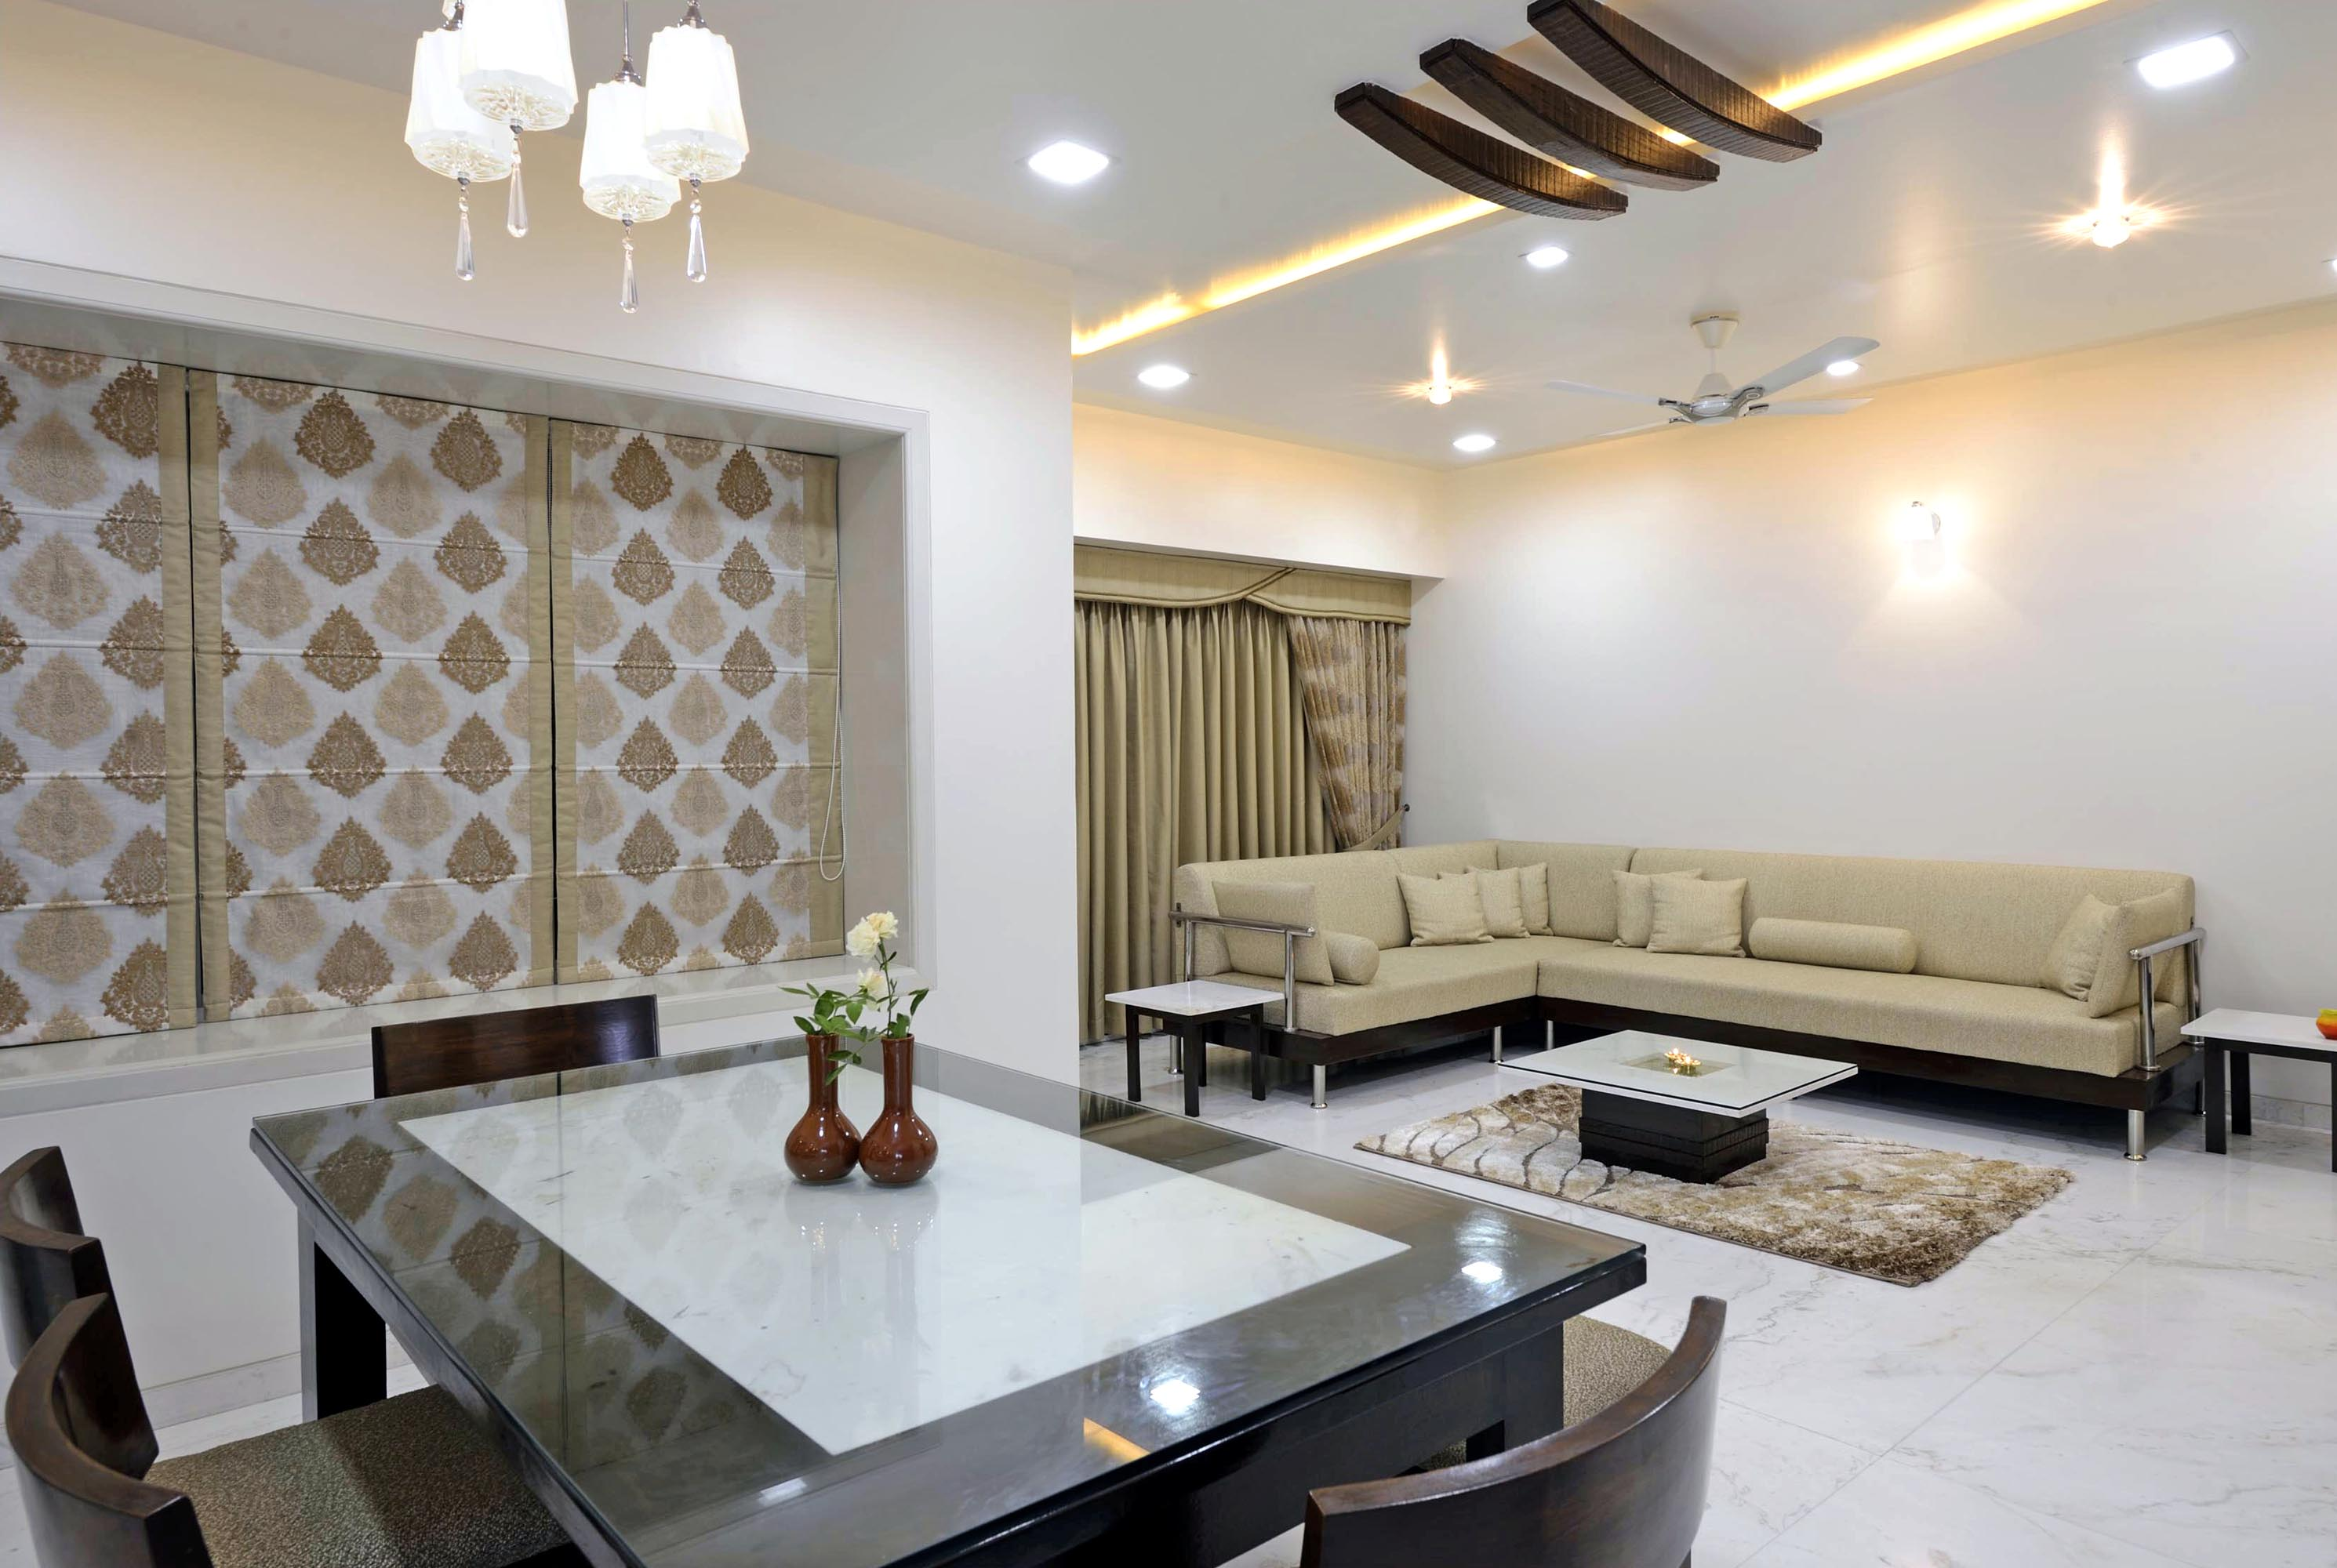 Interior design for home in pune - Fab Home Concepts Pune 2